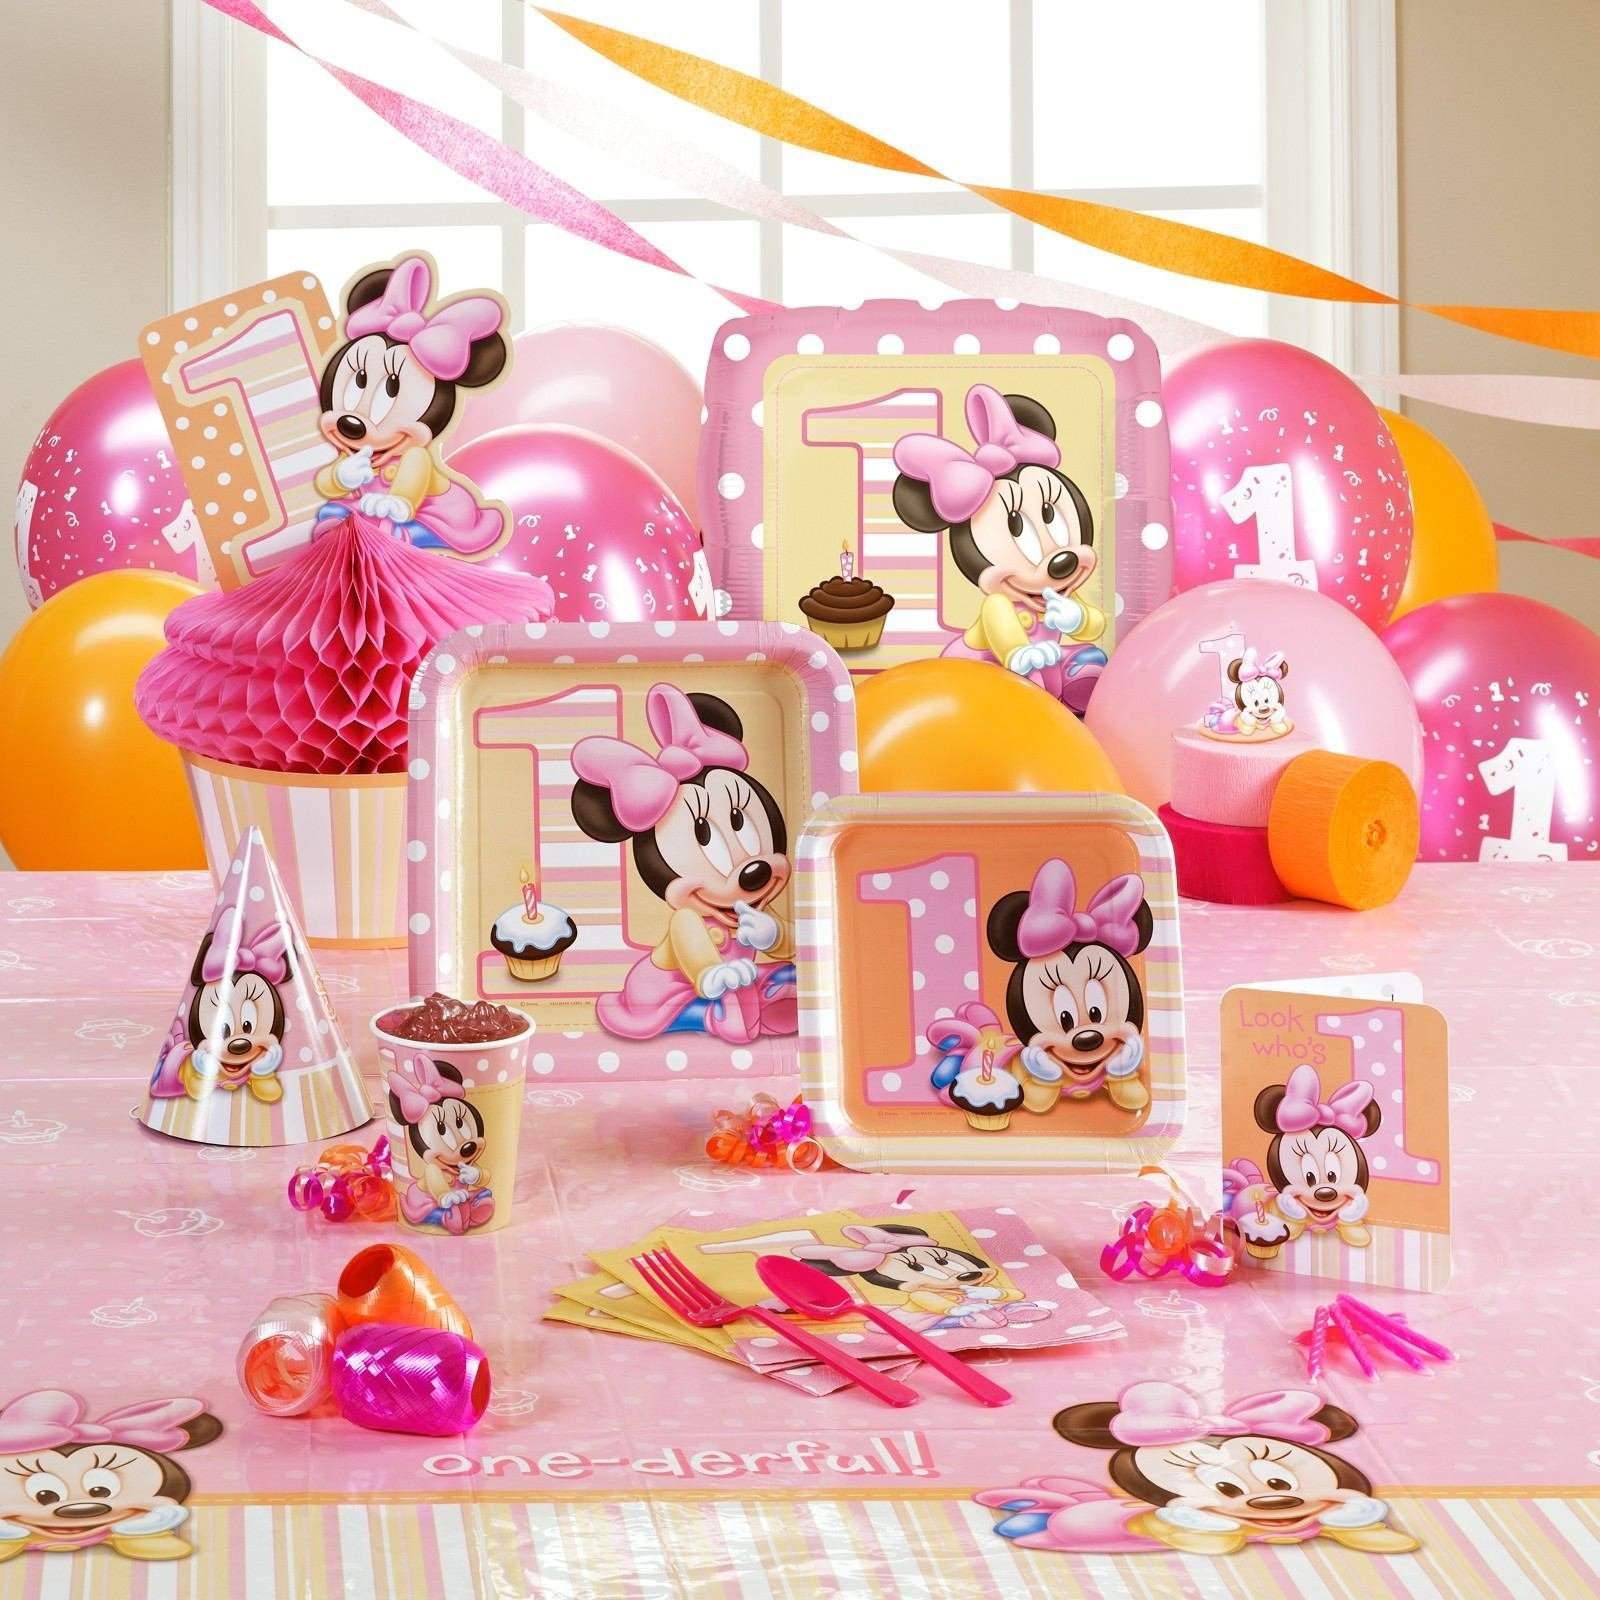 10 Cute Ideas For A 1 Year Old Birthday Party girls birthday party themes best decorations for 1 year old boy 2